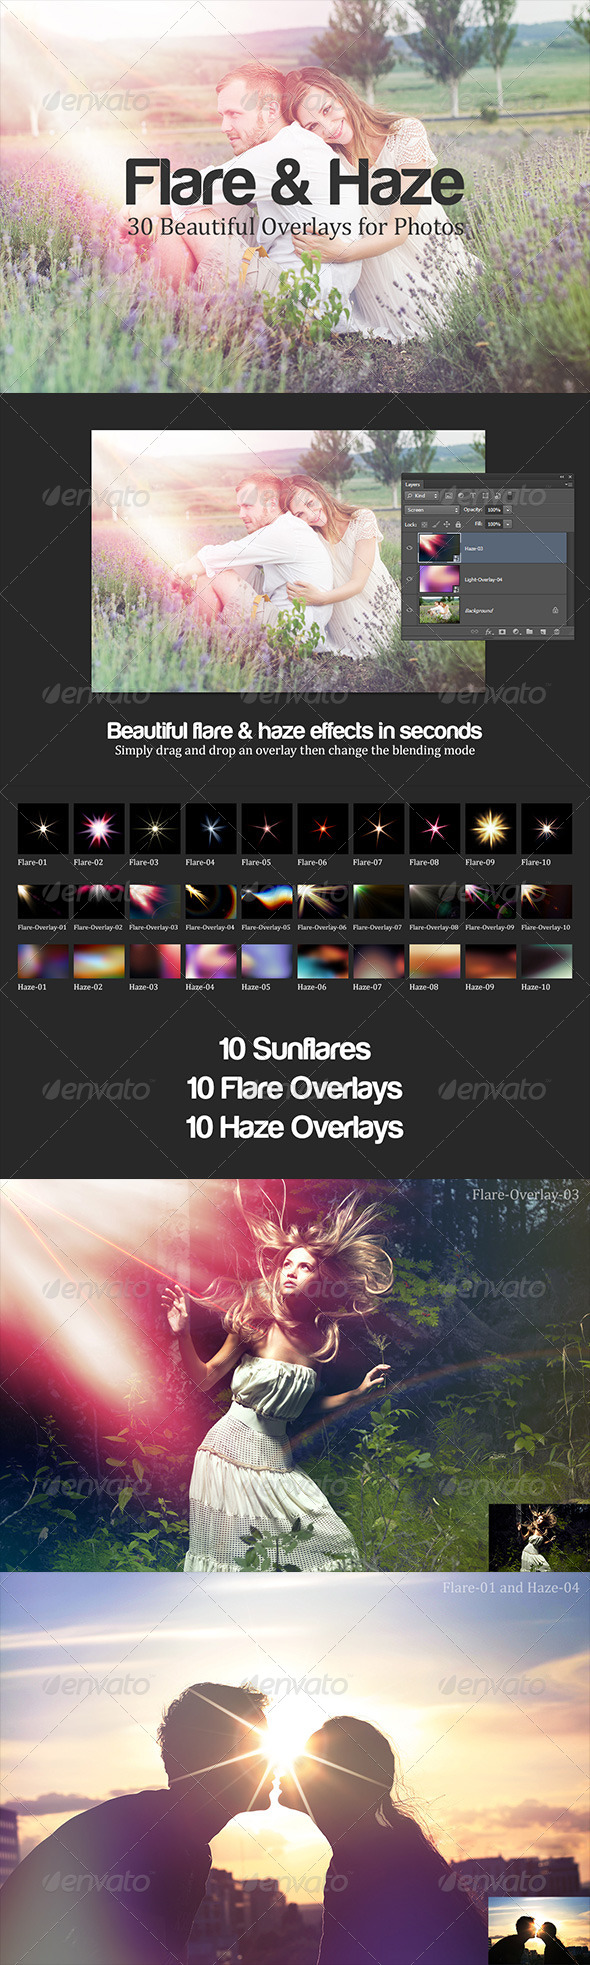 Flare & Haze: 30 Overlays for Photos - Abstract Textures